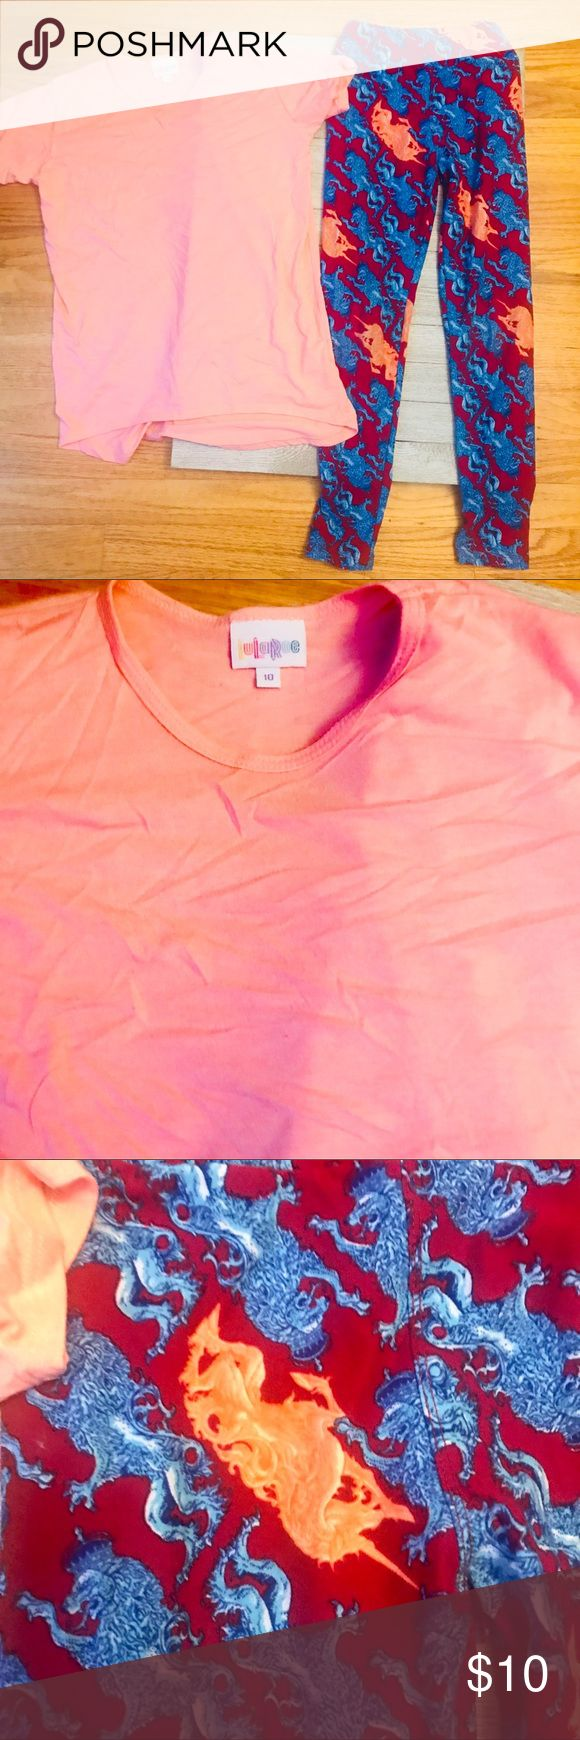 LuLaRoe Girls top sz 10 and tween leggings set LuLaRoe bright peach top, size 10, and printed leggings in size Tween. Both in good used condition with some normal light pilling. Both hung to dry. LuLaRoe Bottoms Leggings